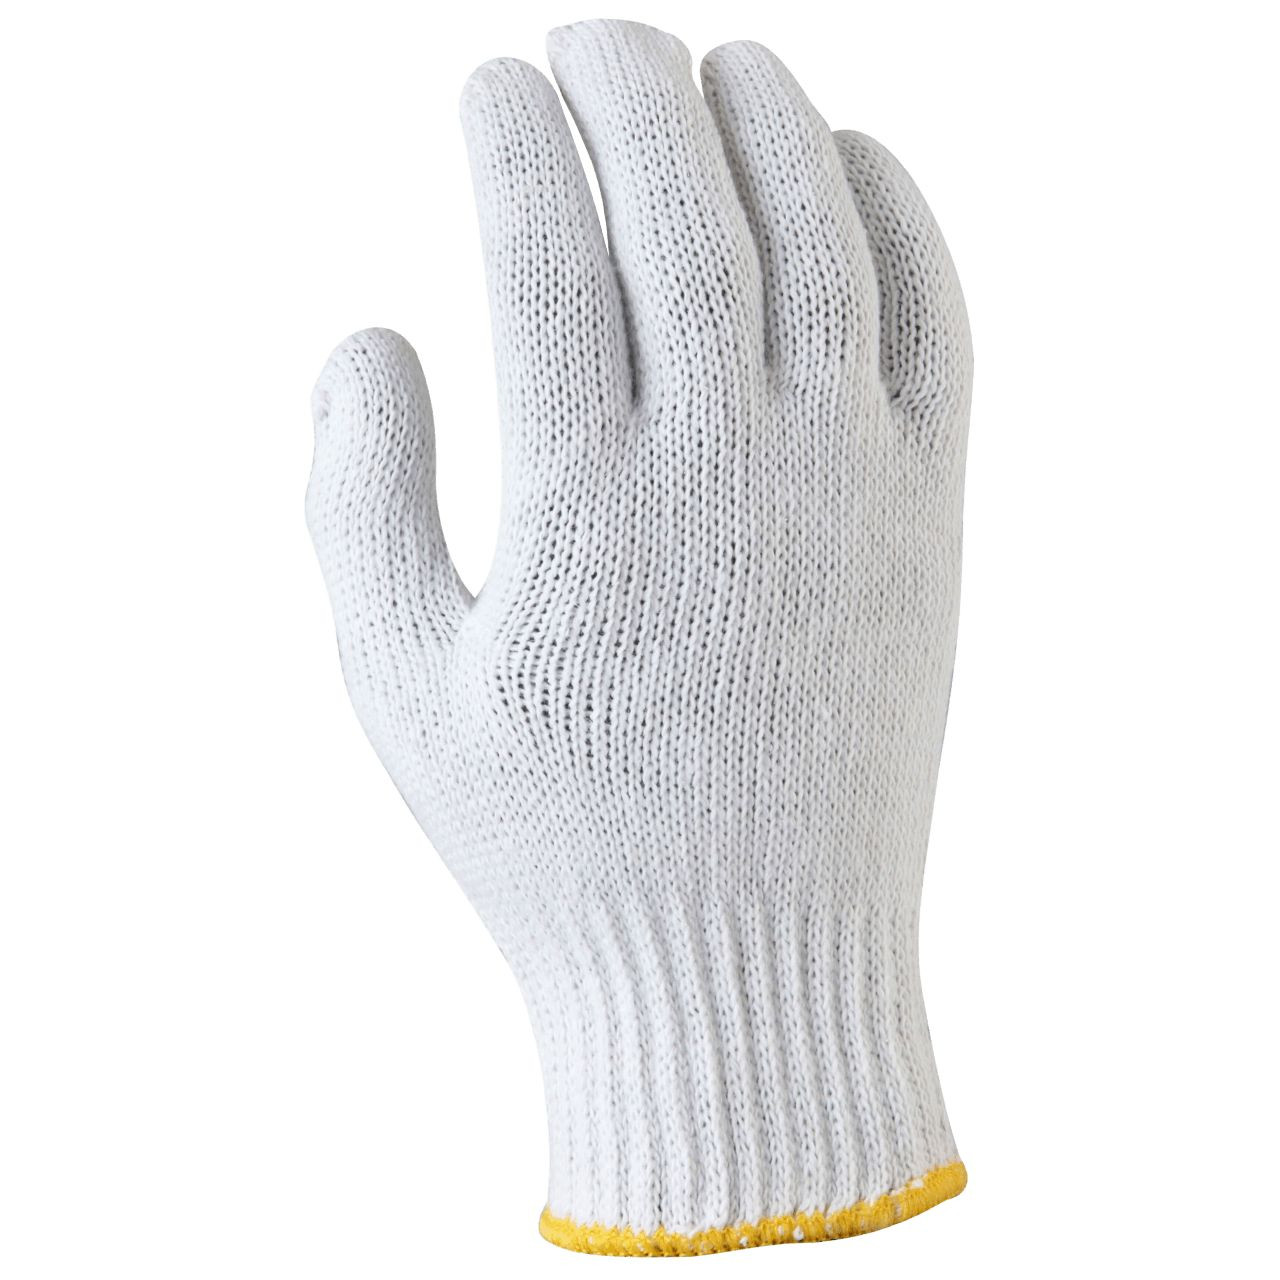 Maxisafe White Poly Cotton Knitted Liner Glove S